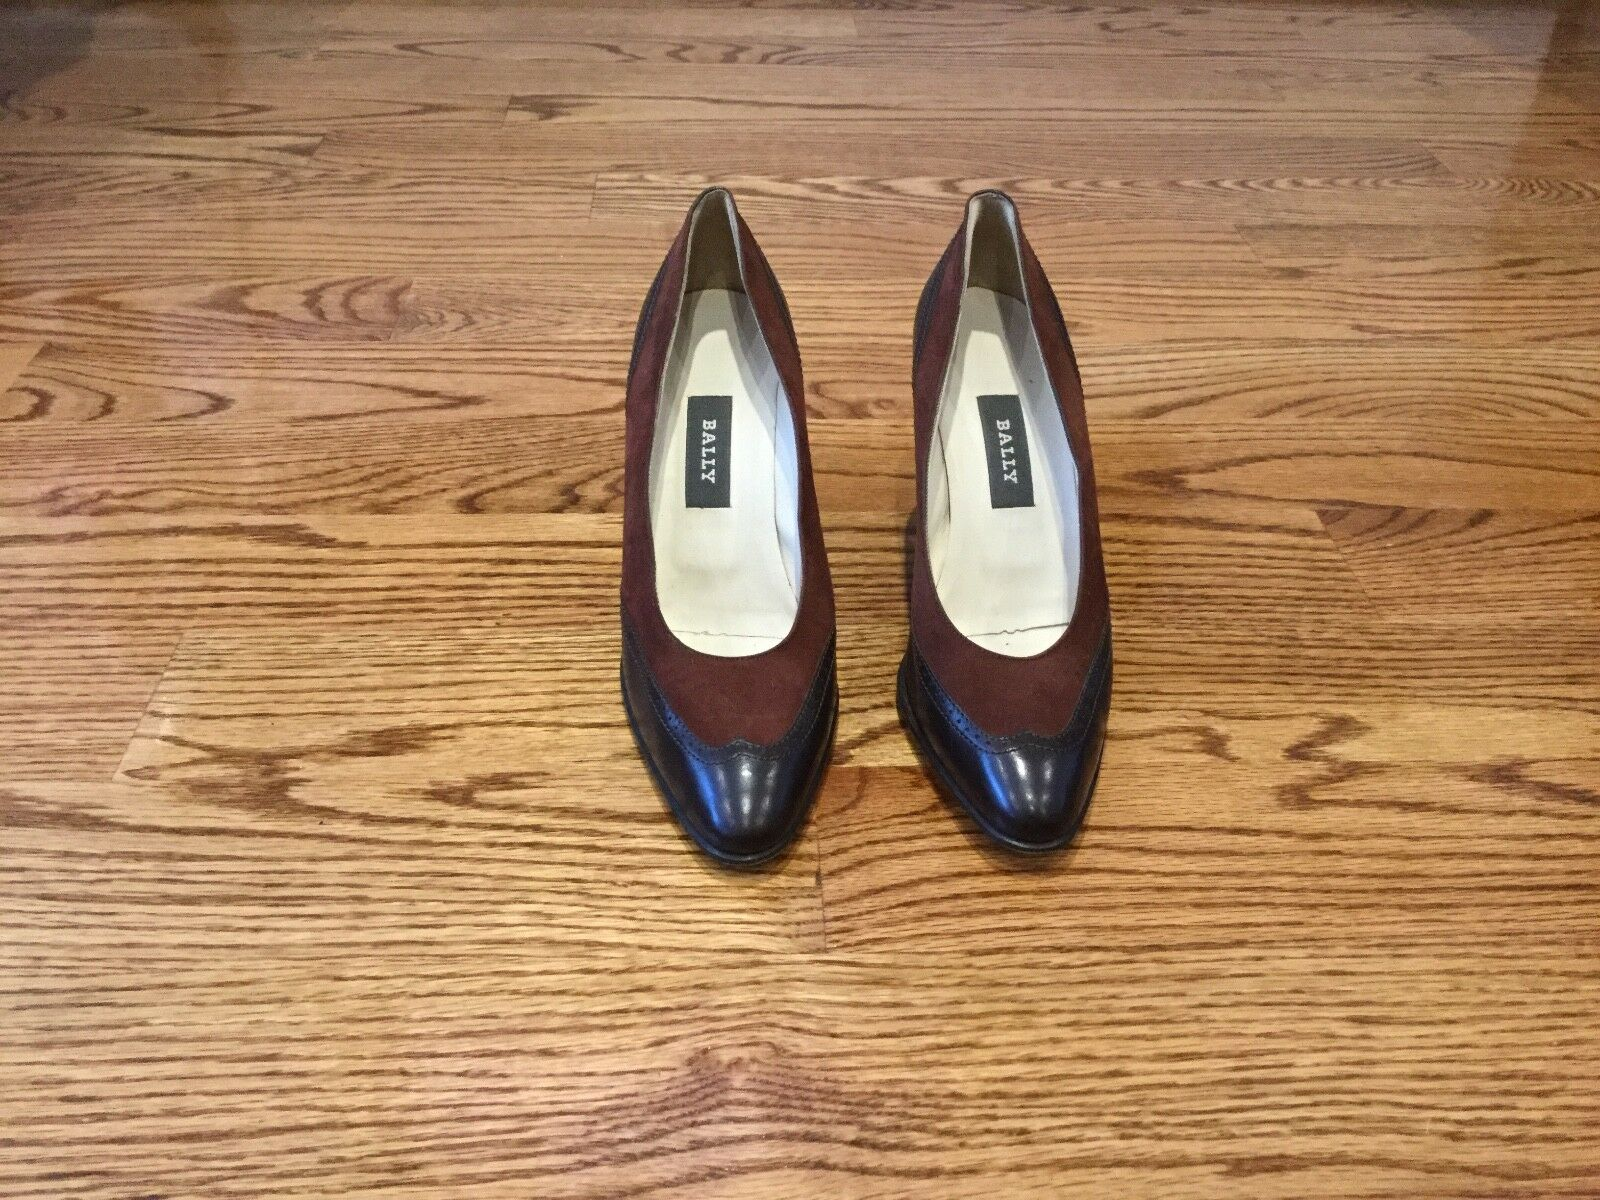 Bally Women's Brown Suede and Leather Pumps Size 7.5